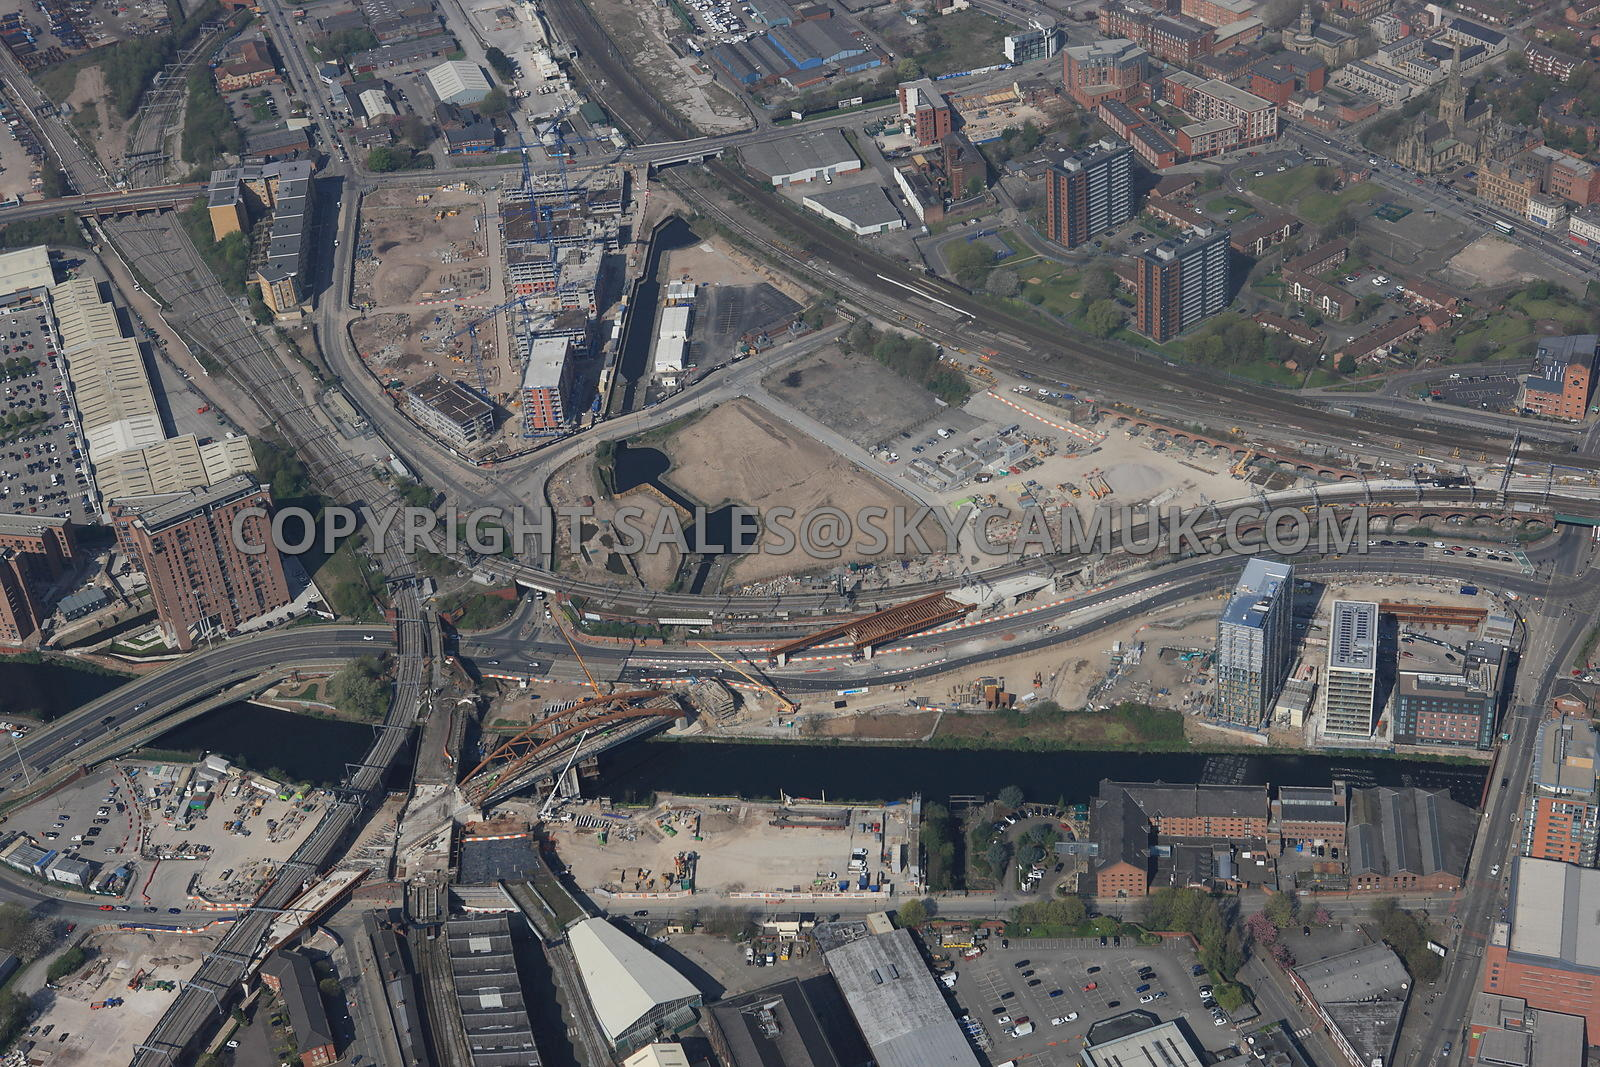 Manchester Crossing point of the river Irwell and the new Ordsall Chord Rail Link and the new developments taking place at Middlewood Lock area of Salford